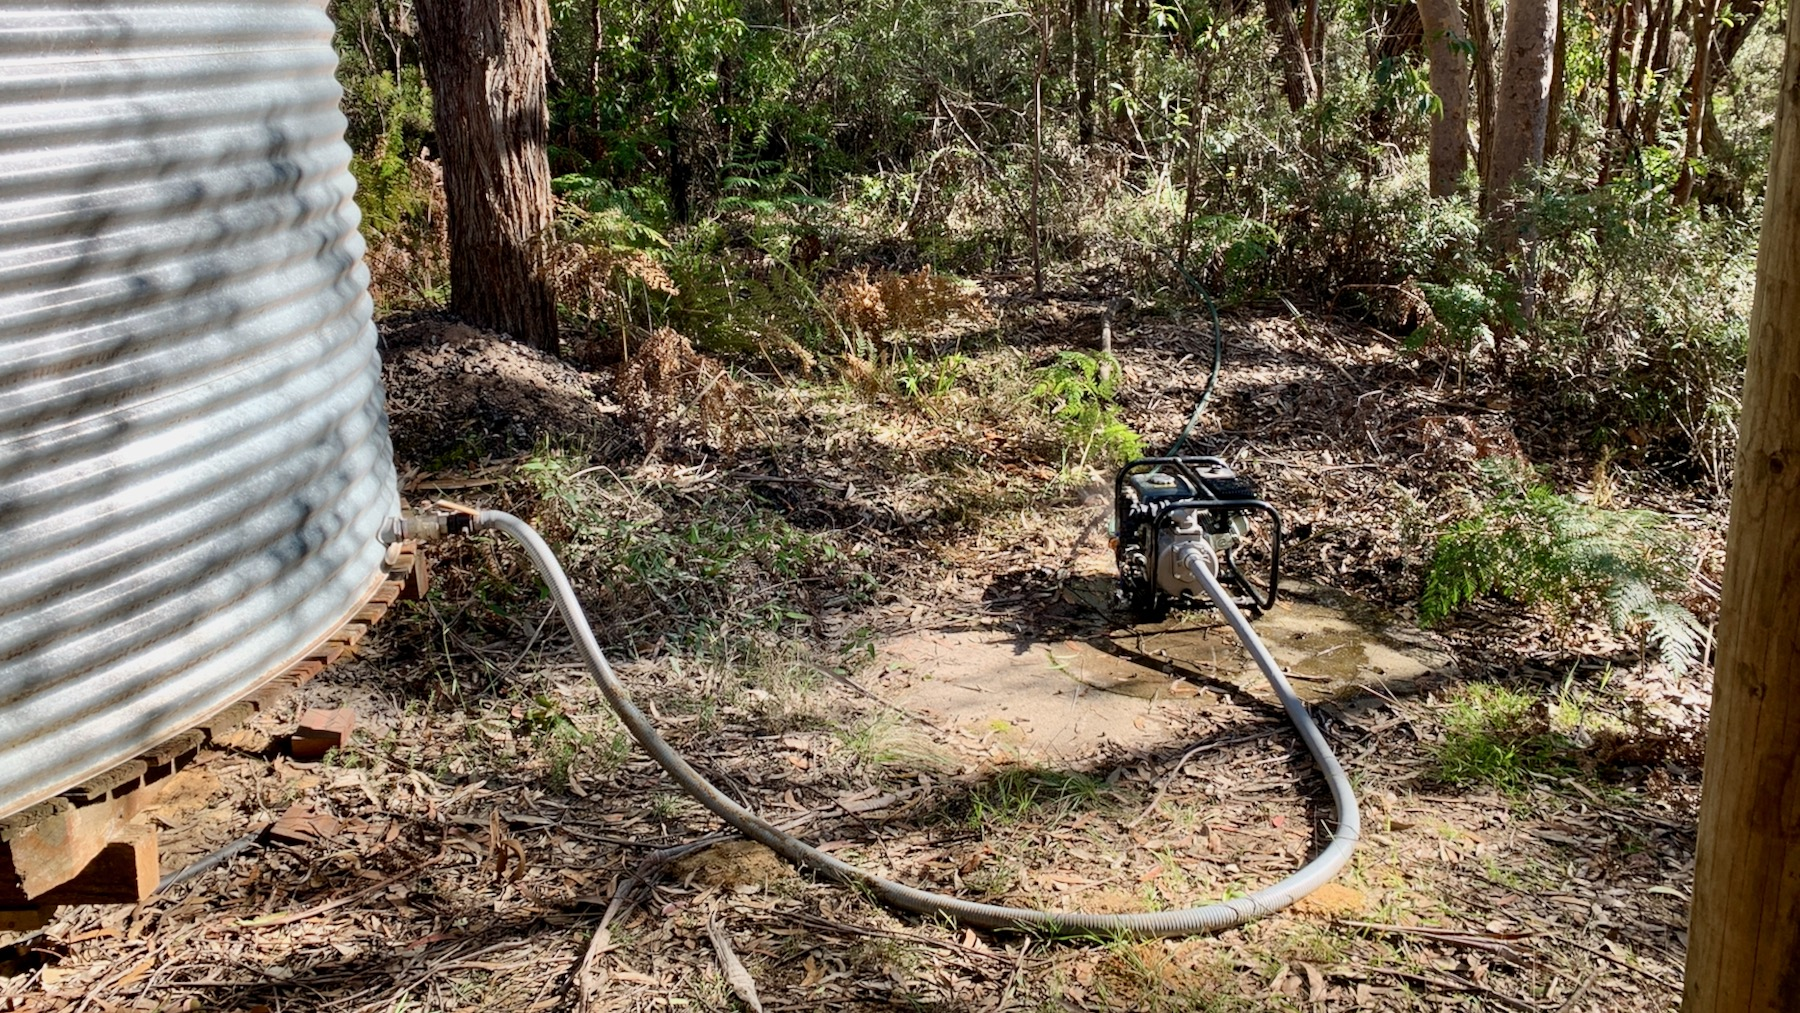 A petrol-driven transfer pump is being used to shift water from one rainwater tank to another through the scrub at Bunjaree Cottages, Wentworth Falls.